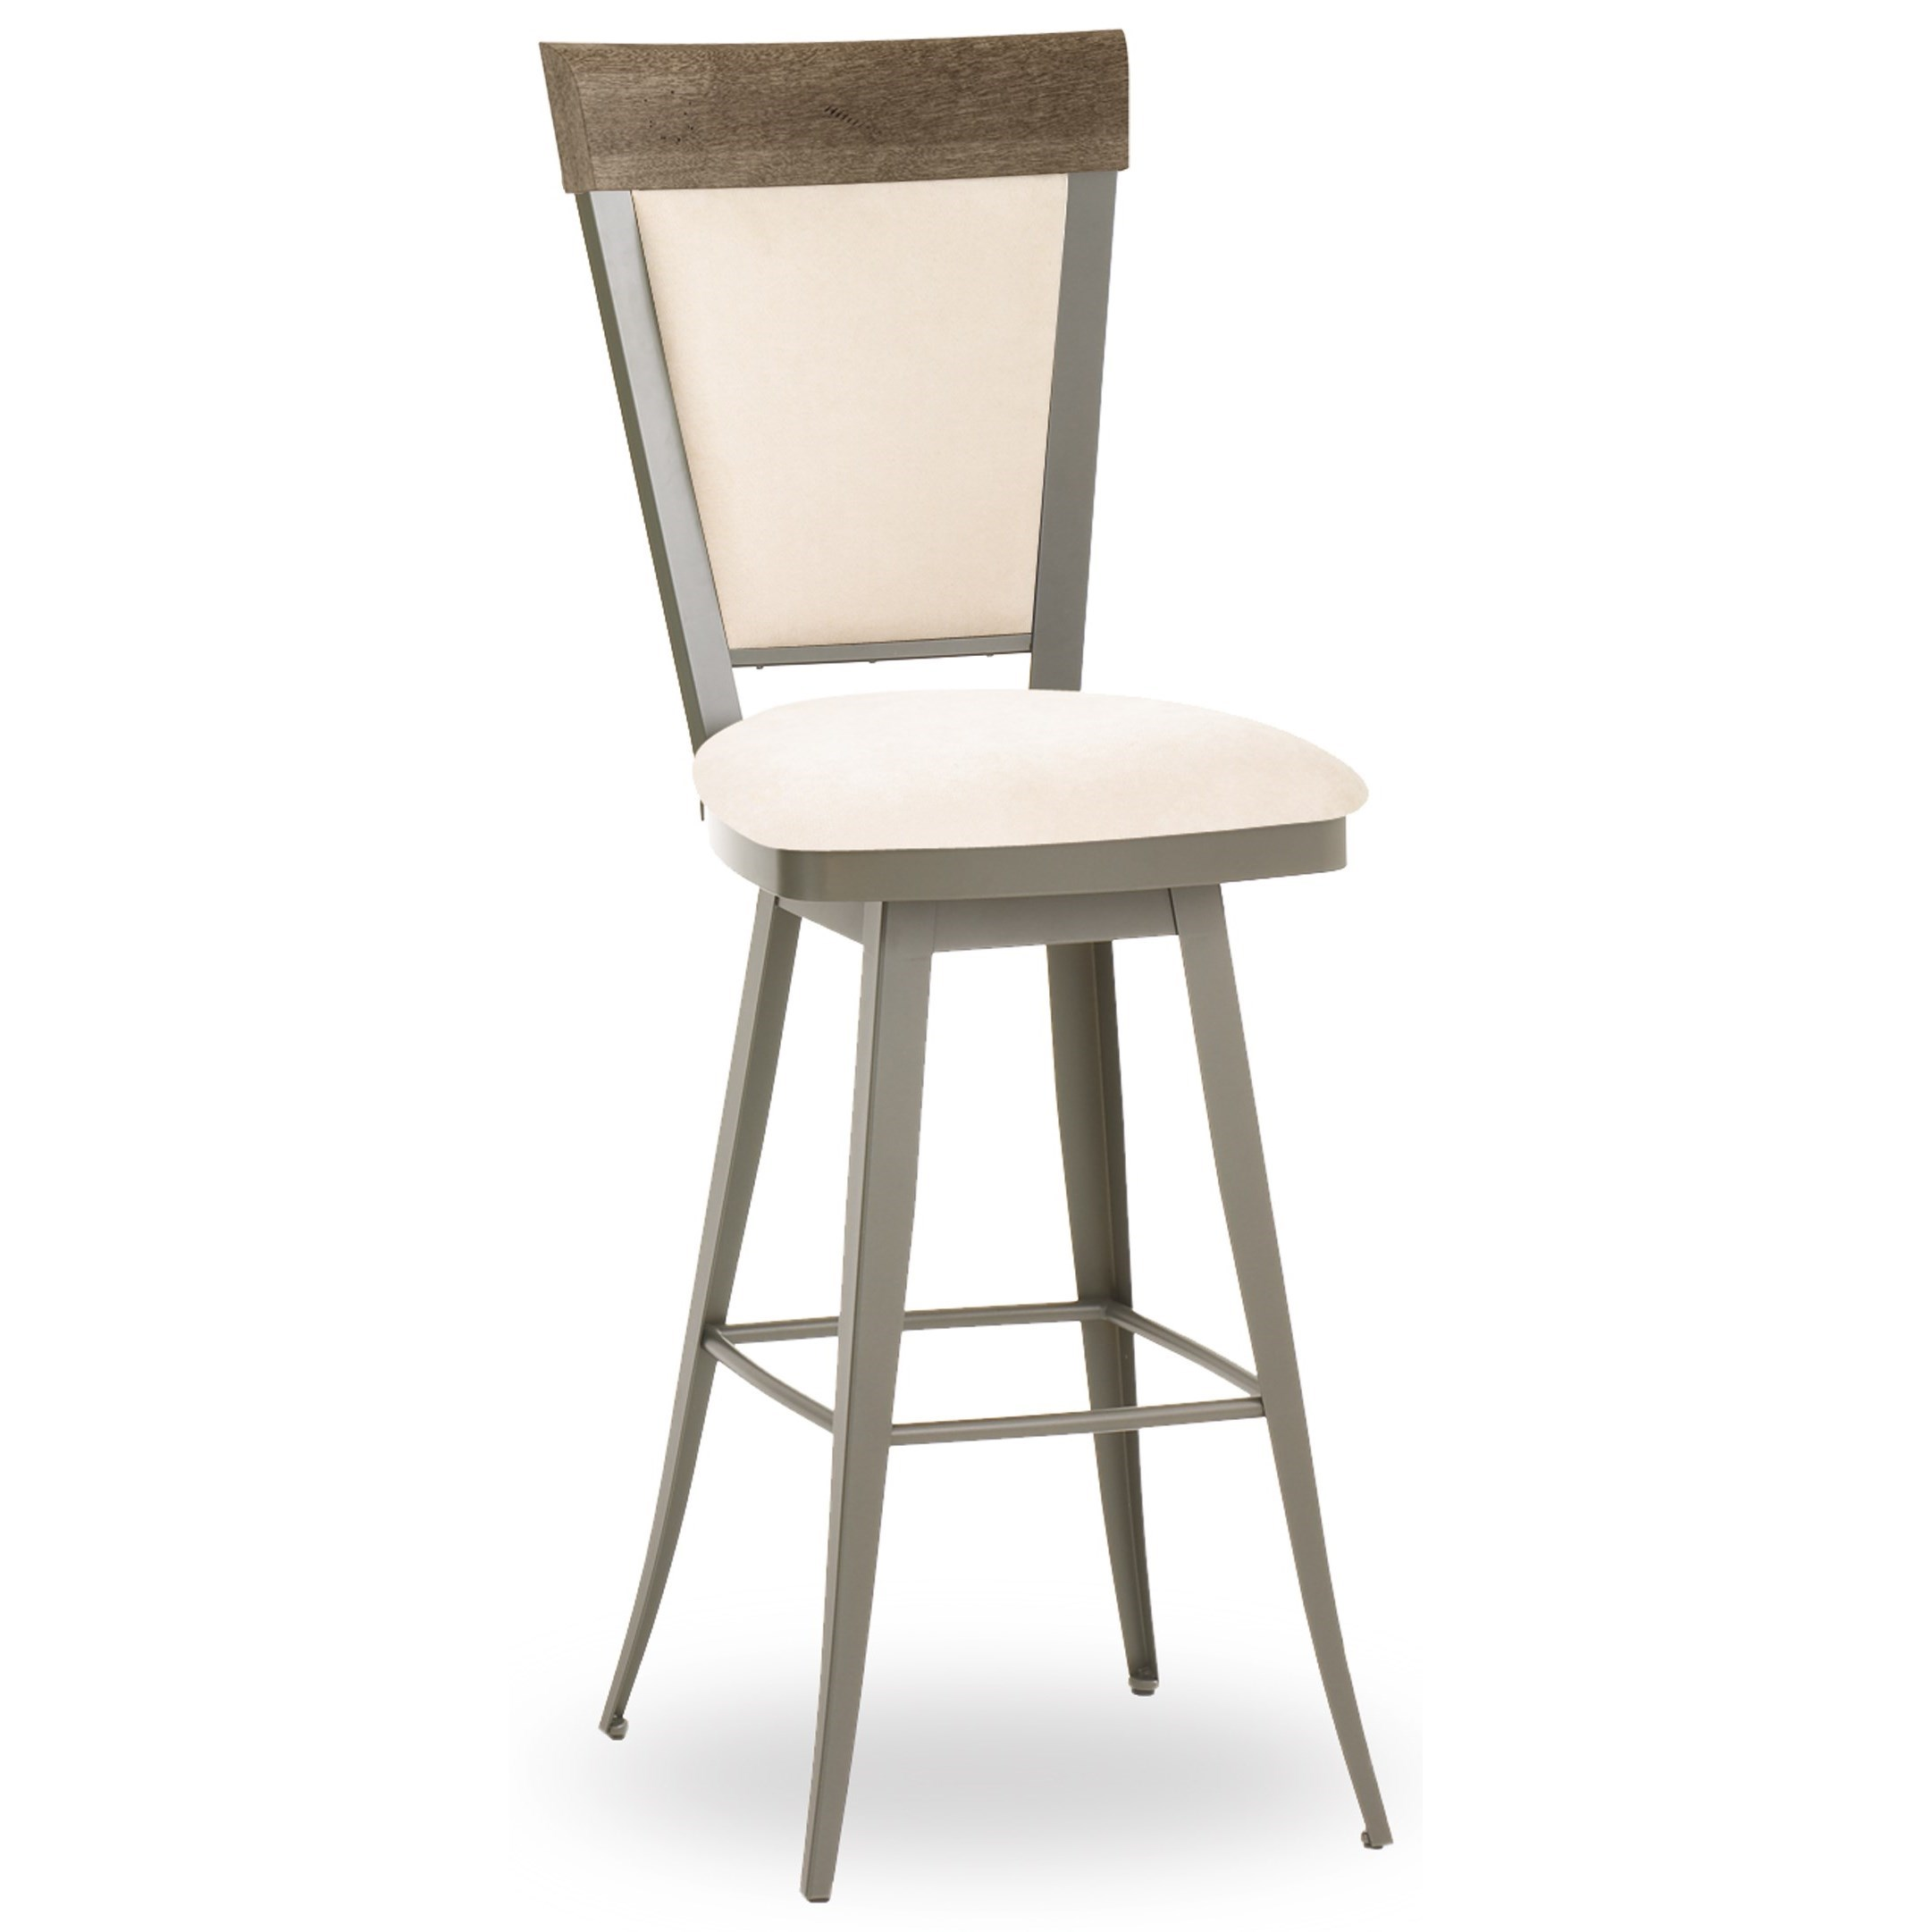 Picture of: Amisco Farmhouse Customizable 30 Eleanor Swivel Bar Stool With Upholstered Seat And Back A1 Furniture Mattress Bar Stools